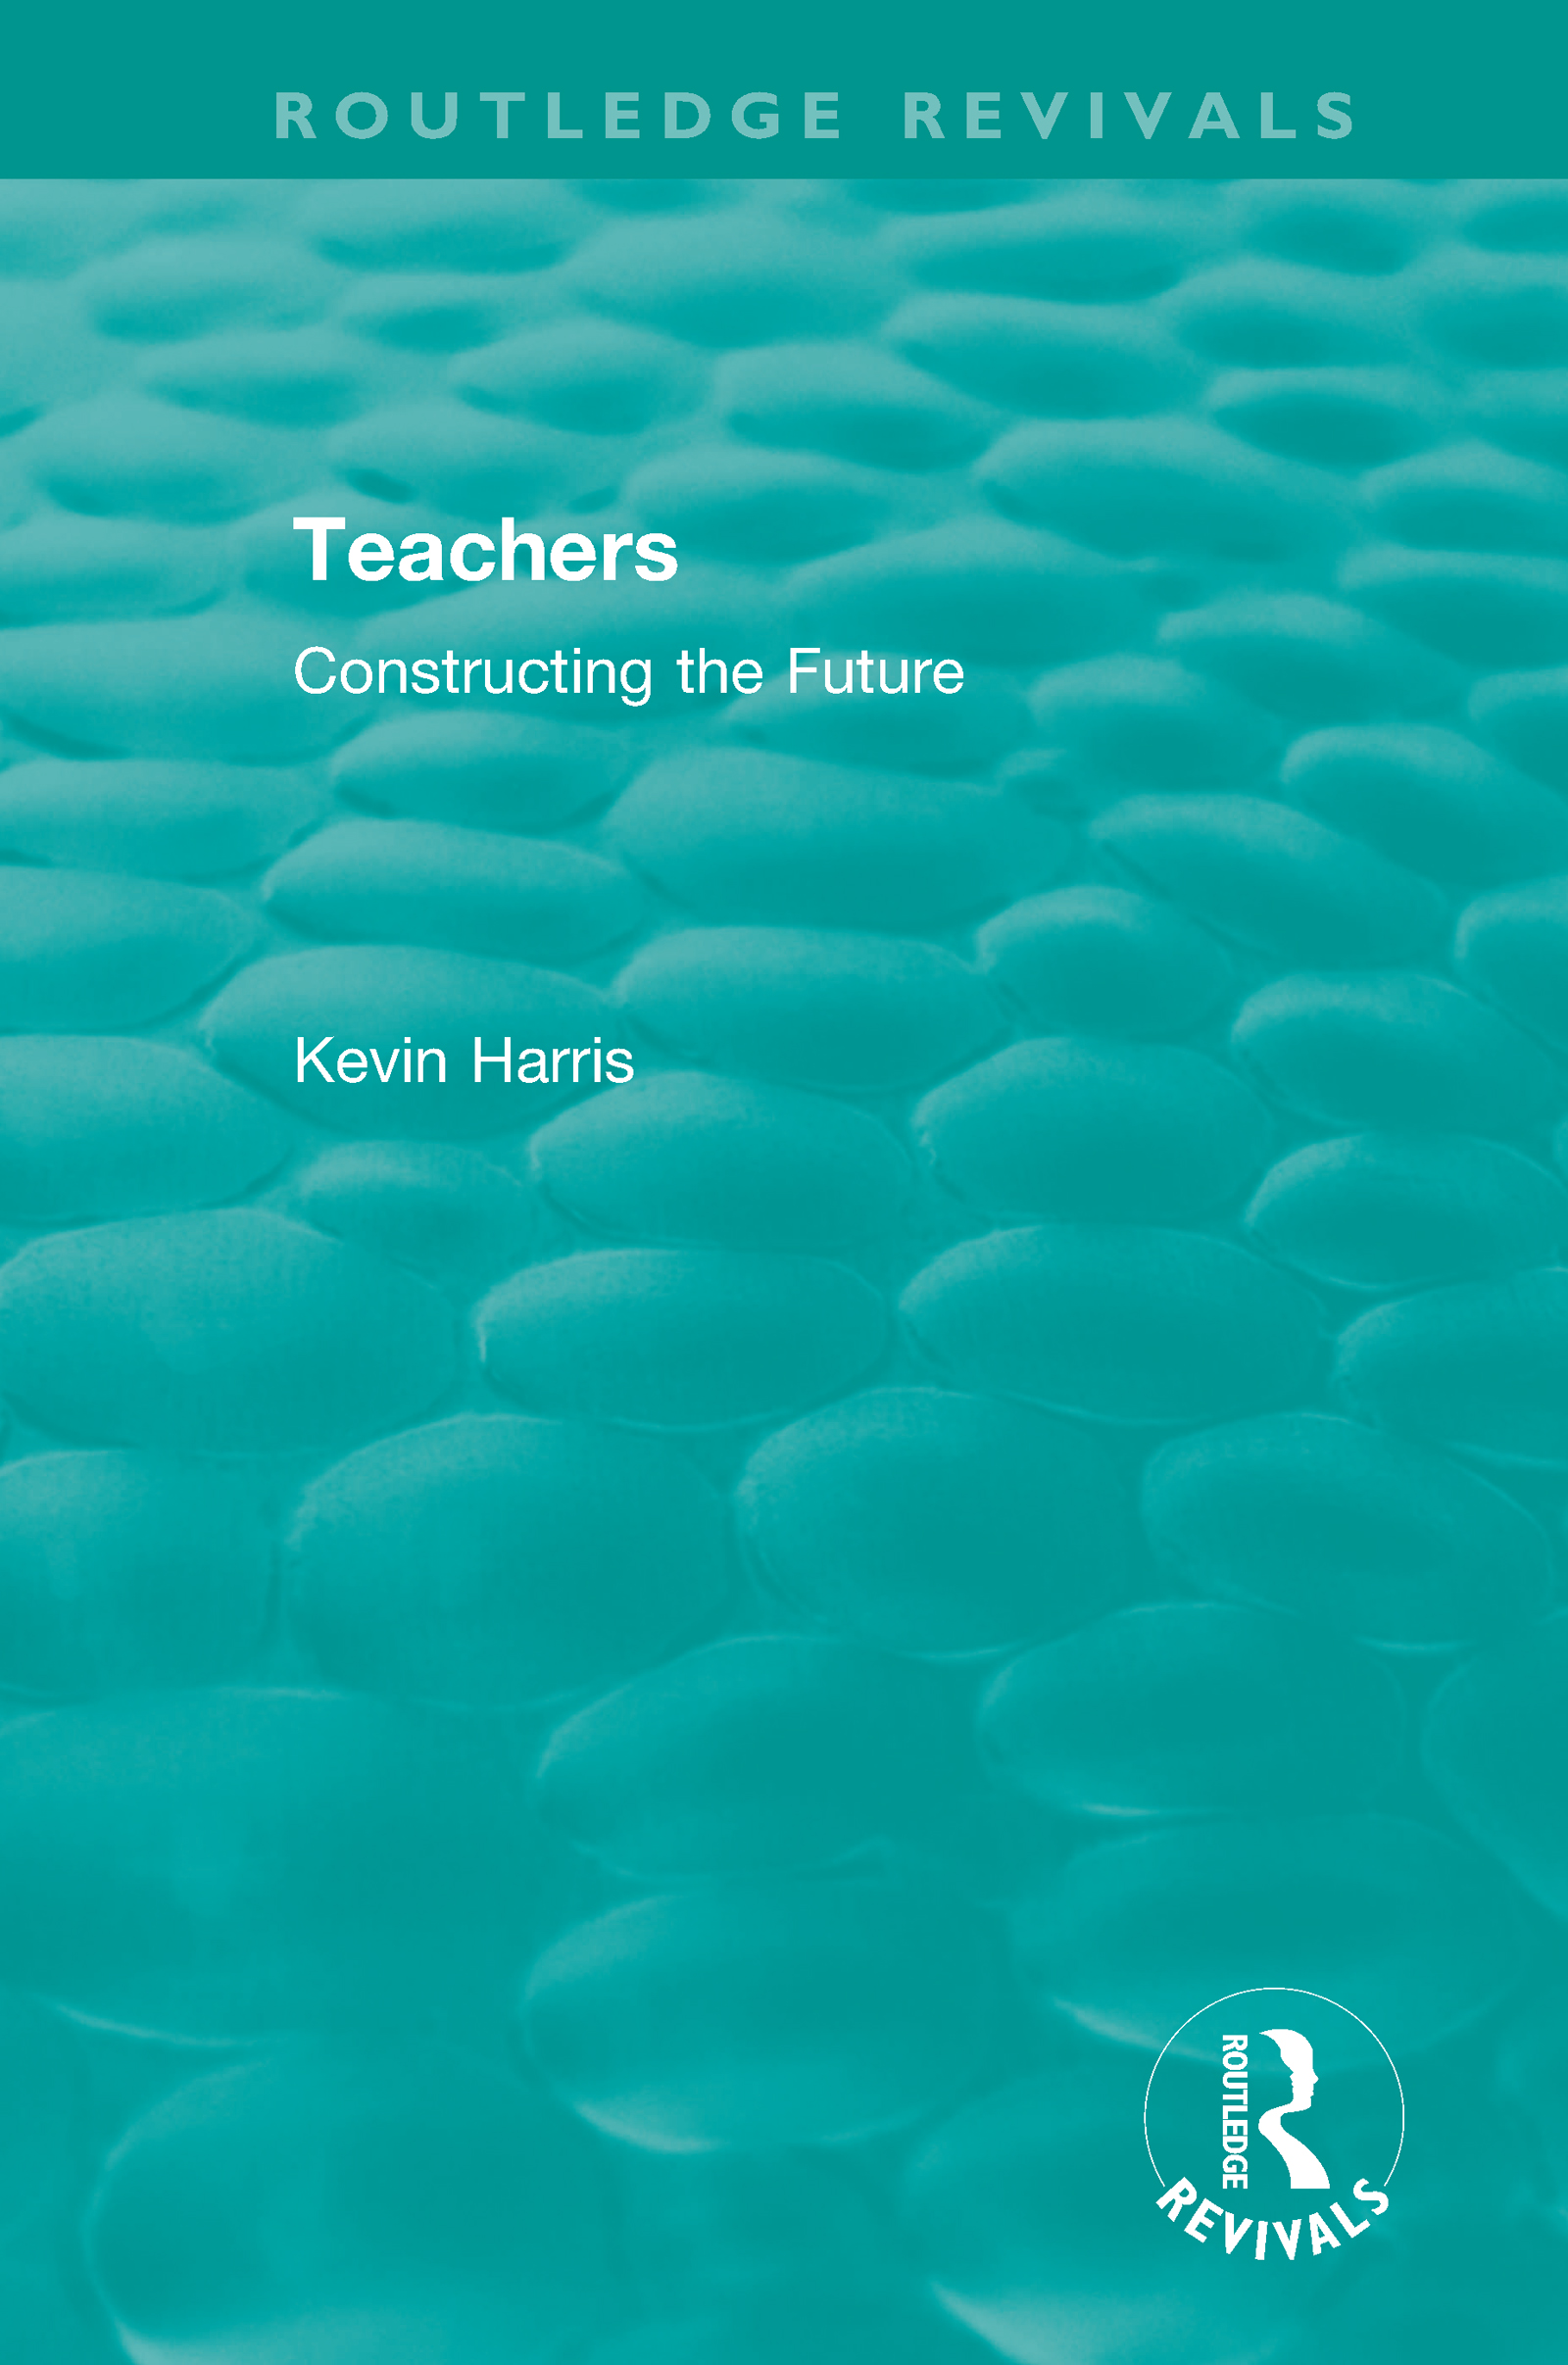 Routledge Revivals: Teachers (1994): Constructing the Future book cover